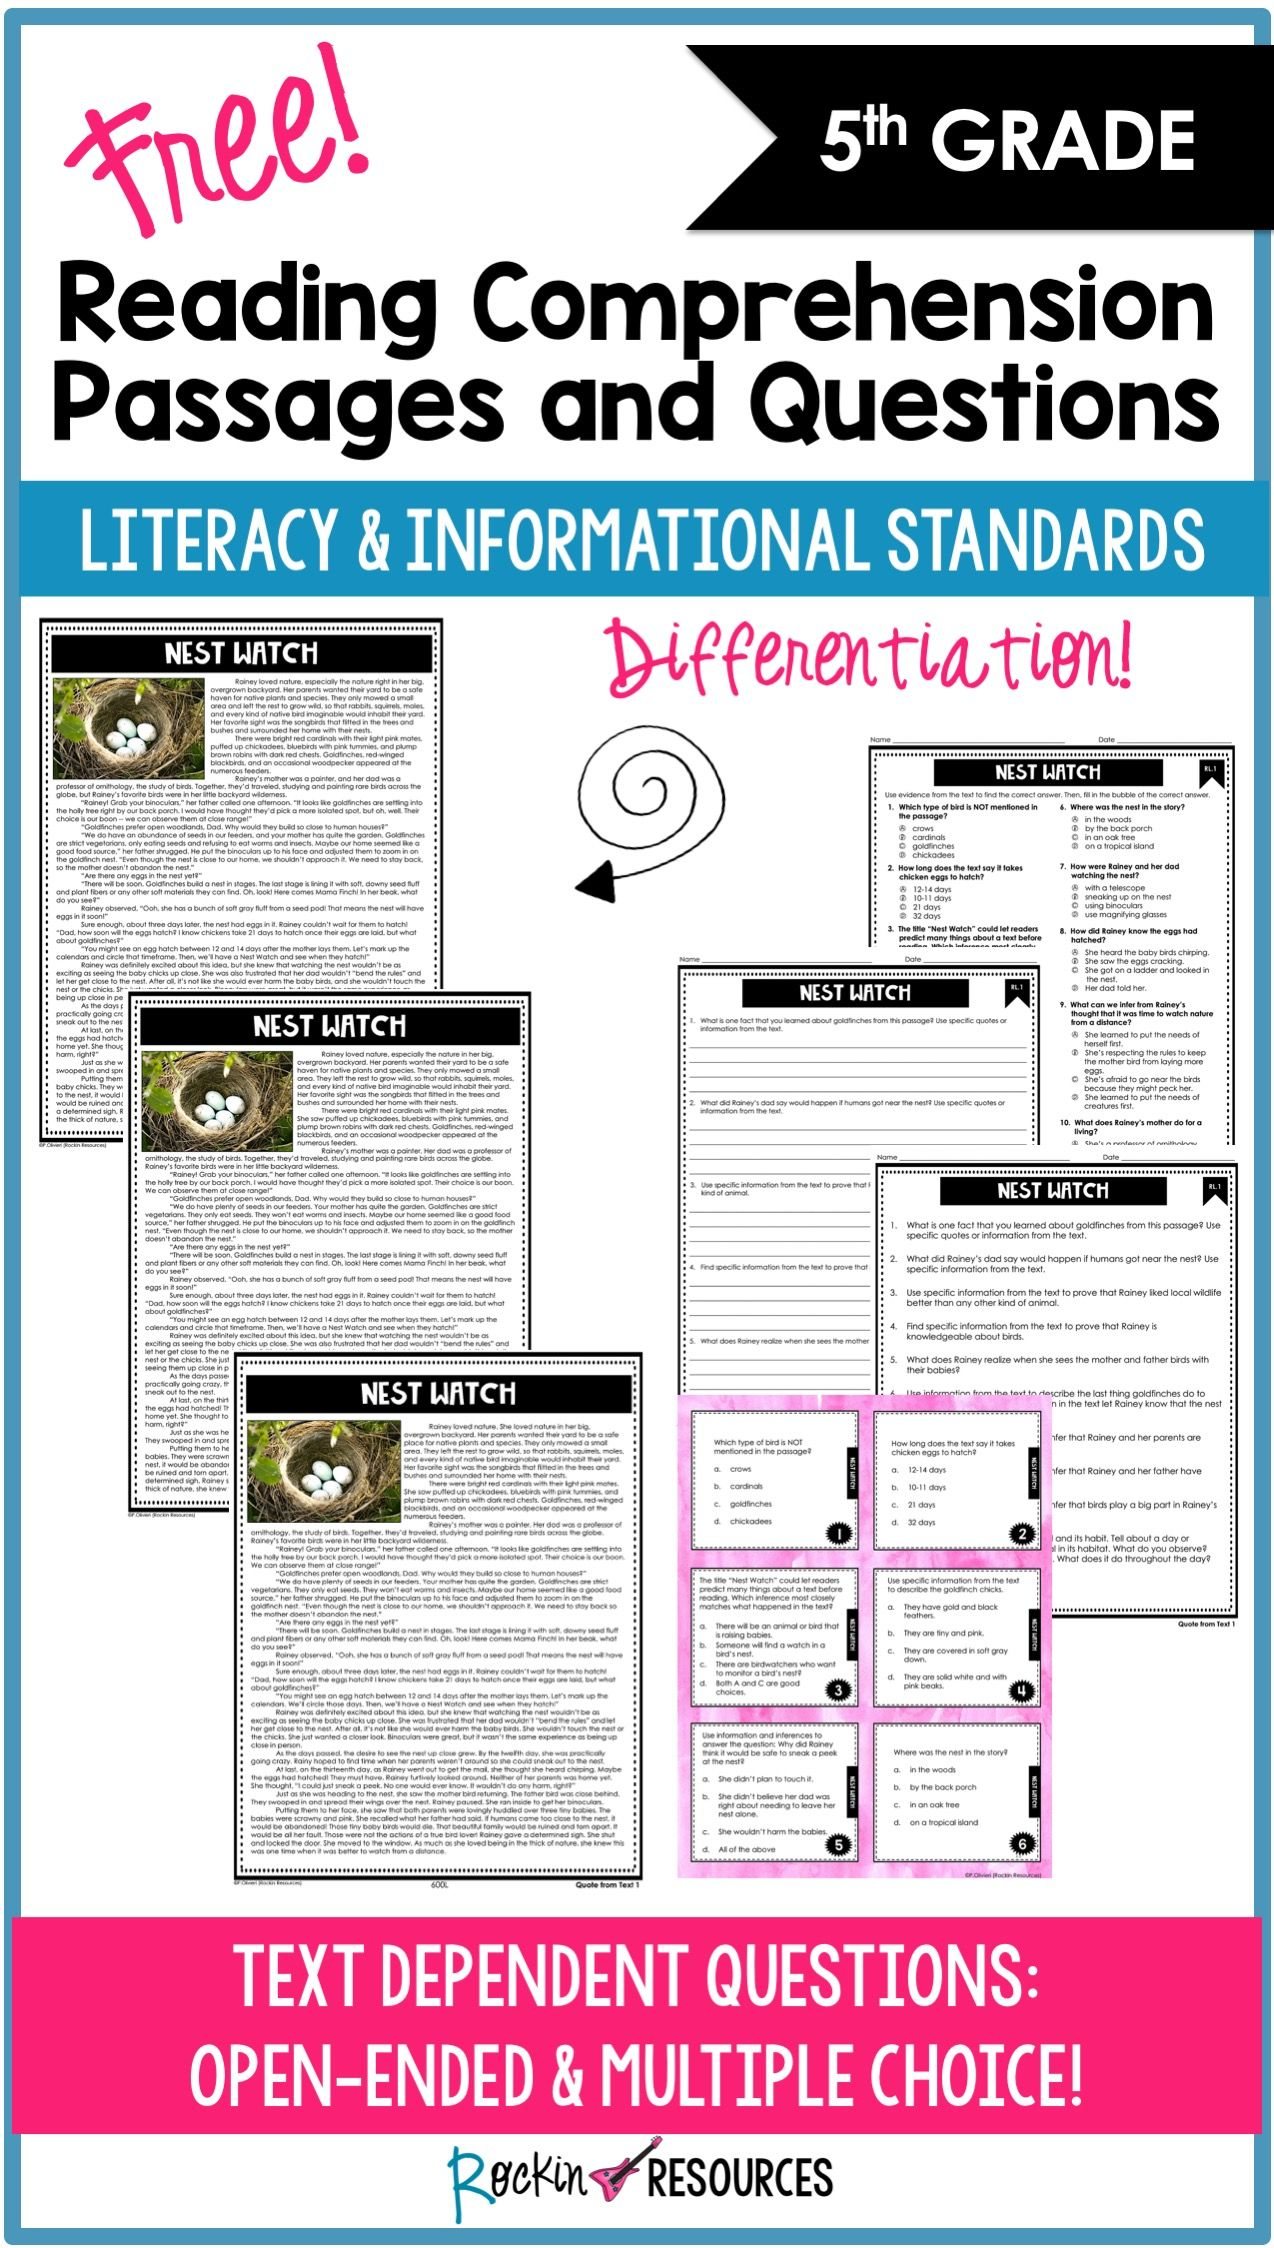 Free 5th Grade Reading Comprehension Passages And Questions Reading Comprehension Passages Text Dependent Questions Comprehension Passage [ 2248 x 1274 Pixel ]